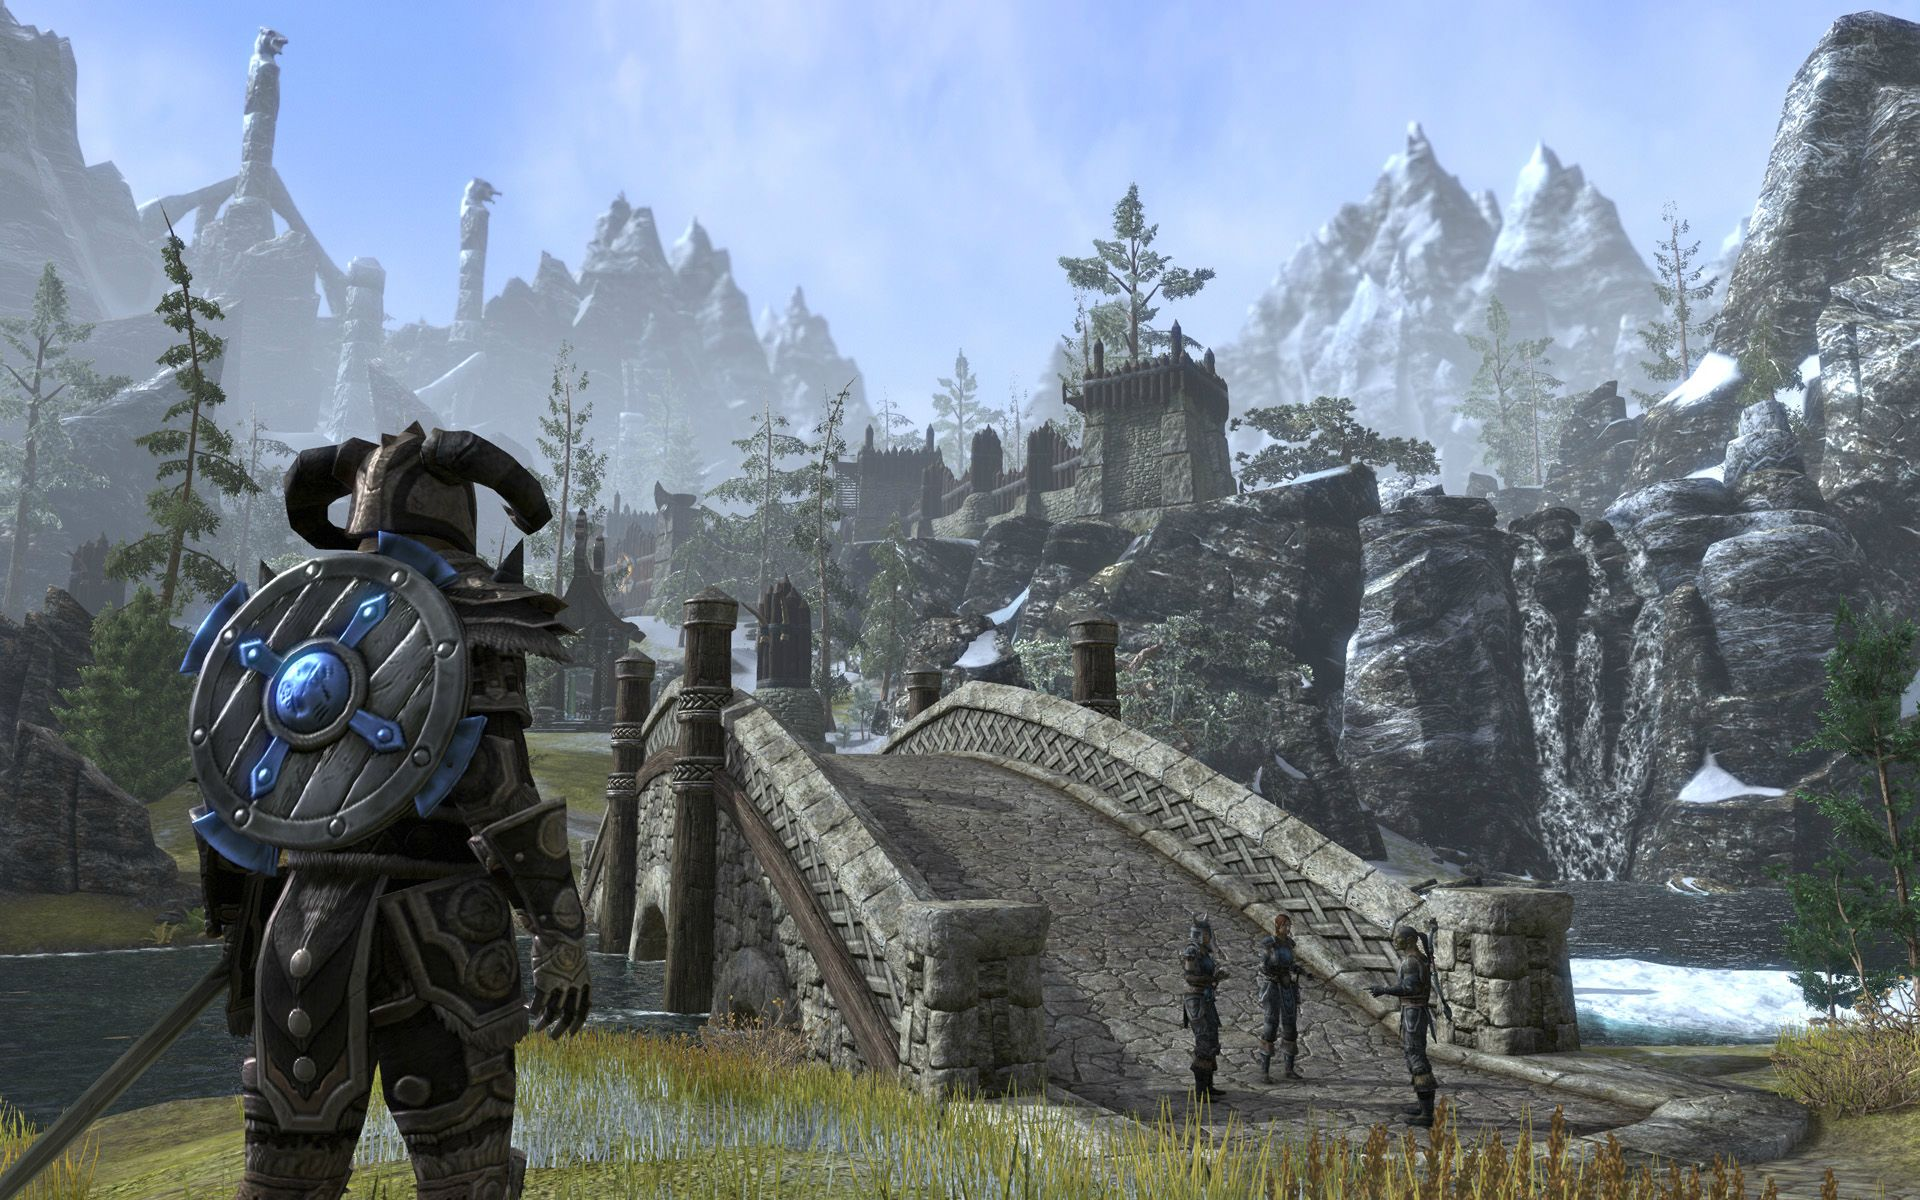 Elder Scrolls Online Hd Wallpaper Posted By Christopher Thompson